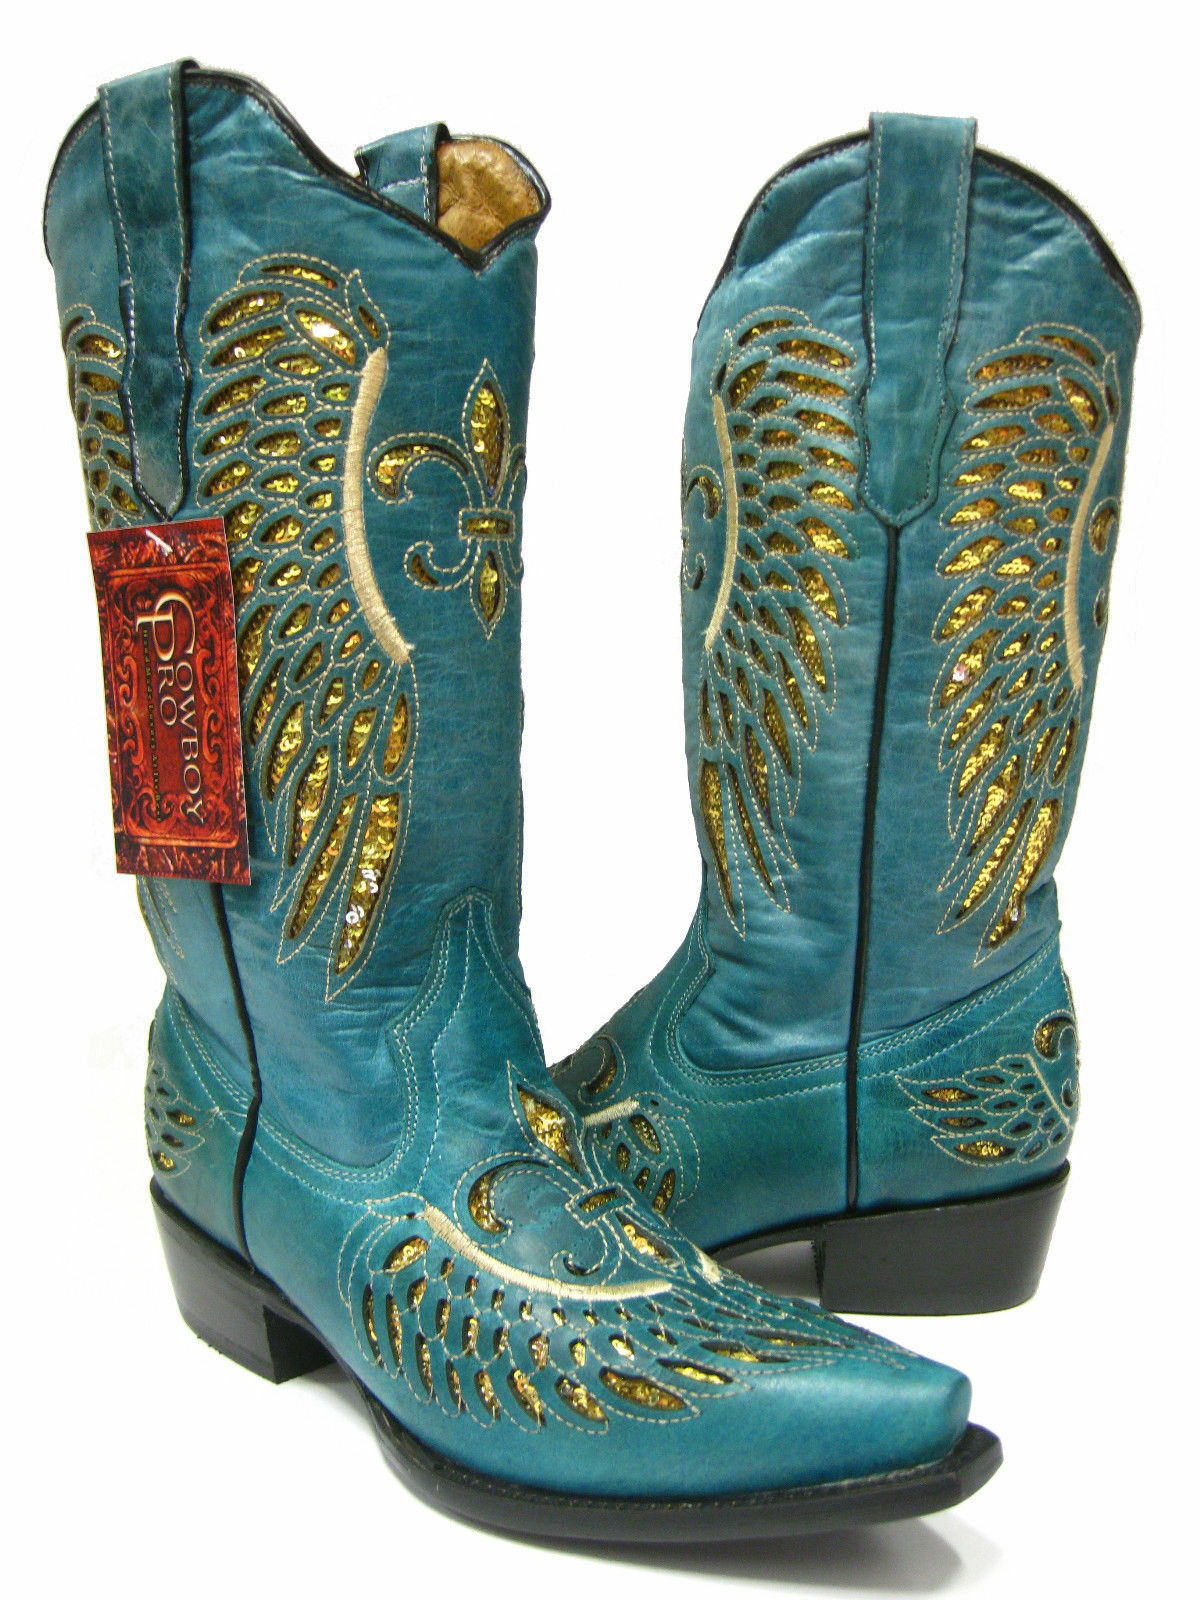 Wouomo Turquoise Flower Inlay oro Sequins Wear Leather Leather Leather Cowboy stivali Snip Toe 9a7972